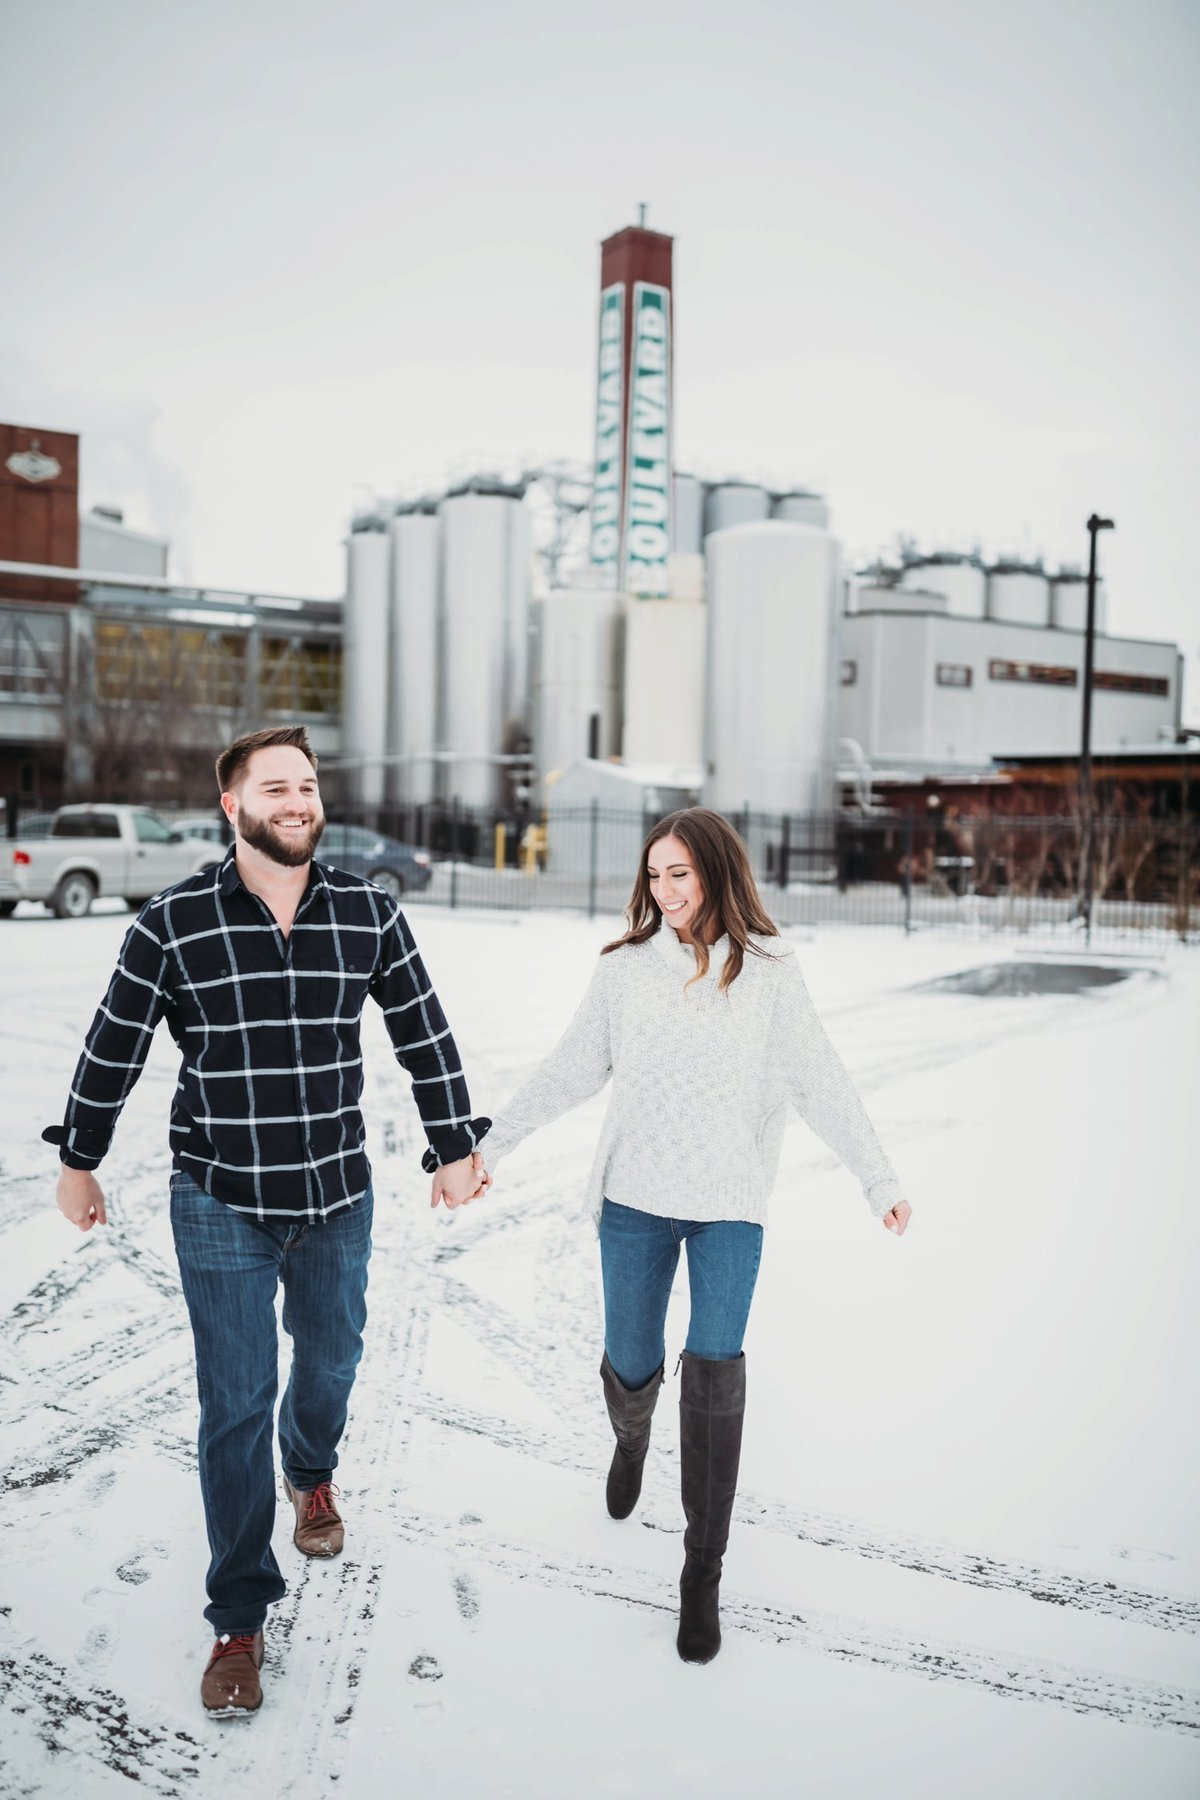 Kansas City Salt Lake City Destination Wedding Photographer_0440